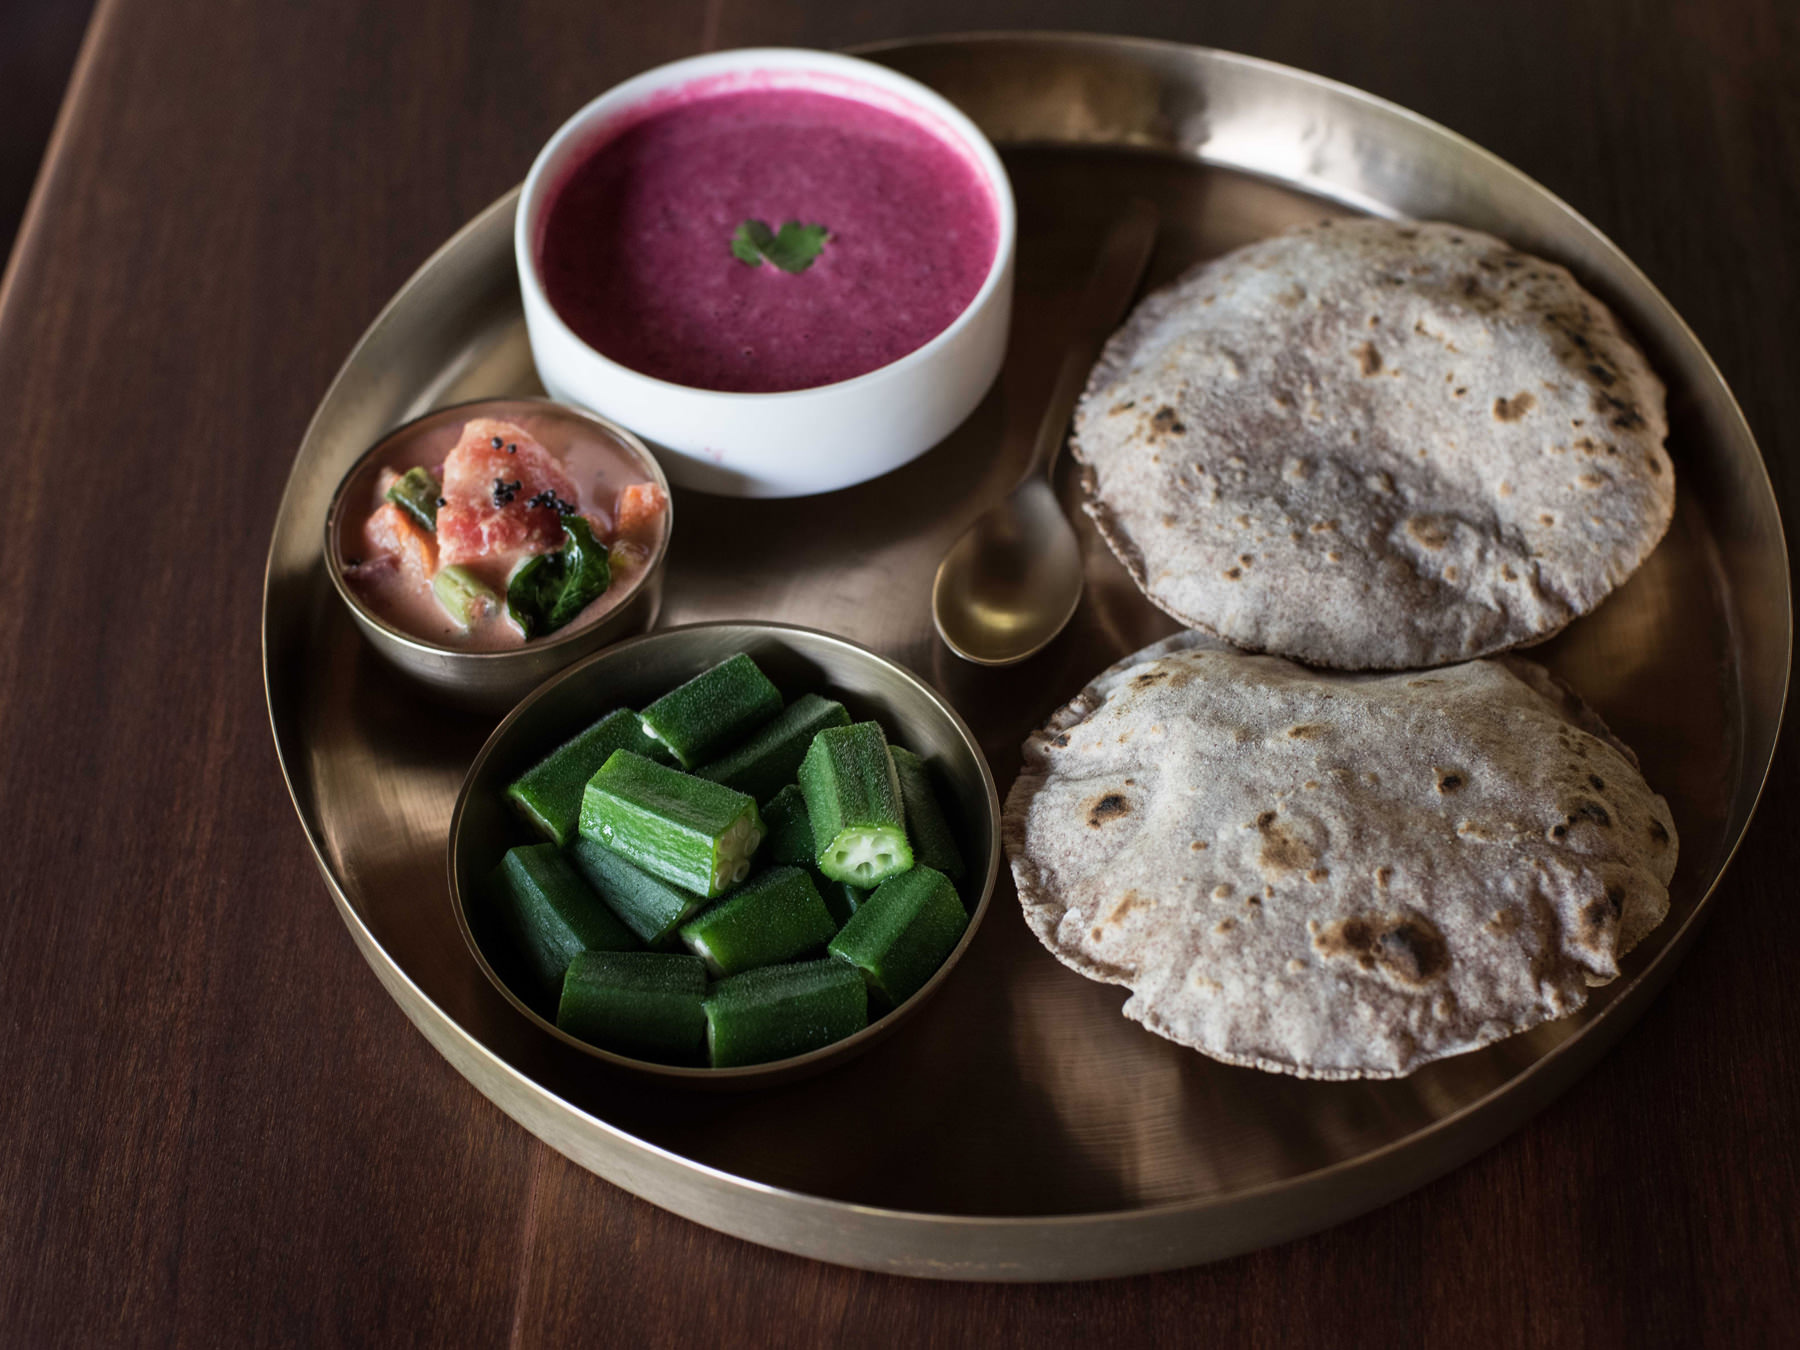 Delve into the Sattvic food based on Ayurvedic diet